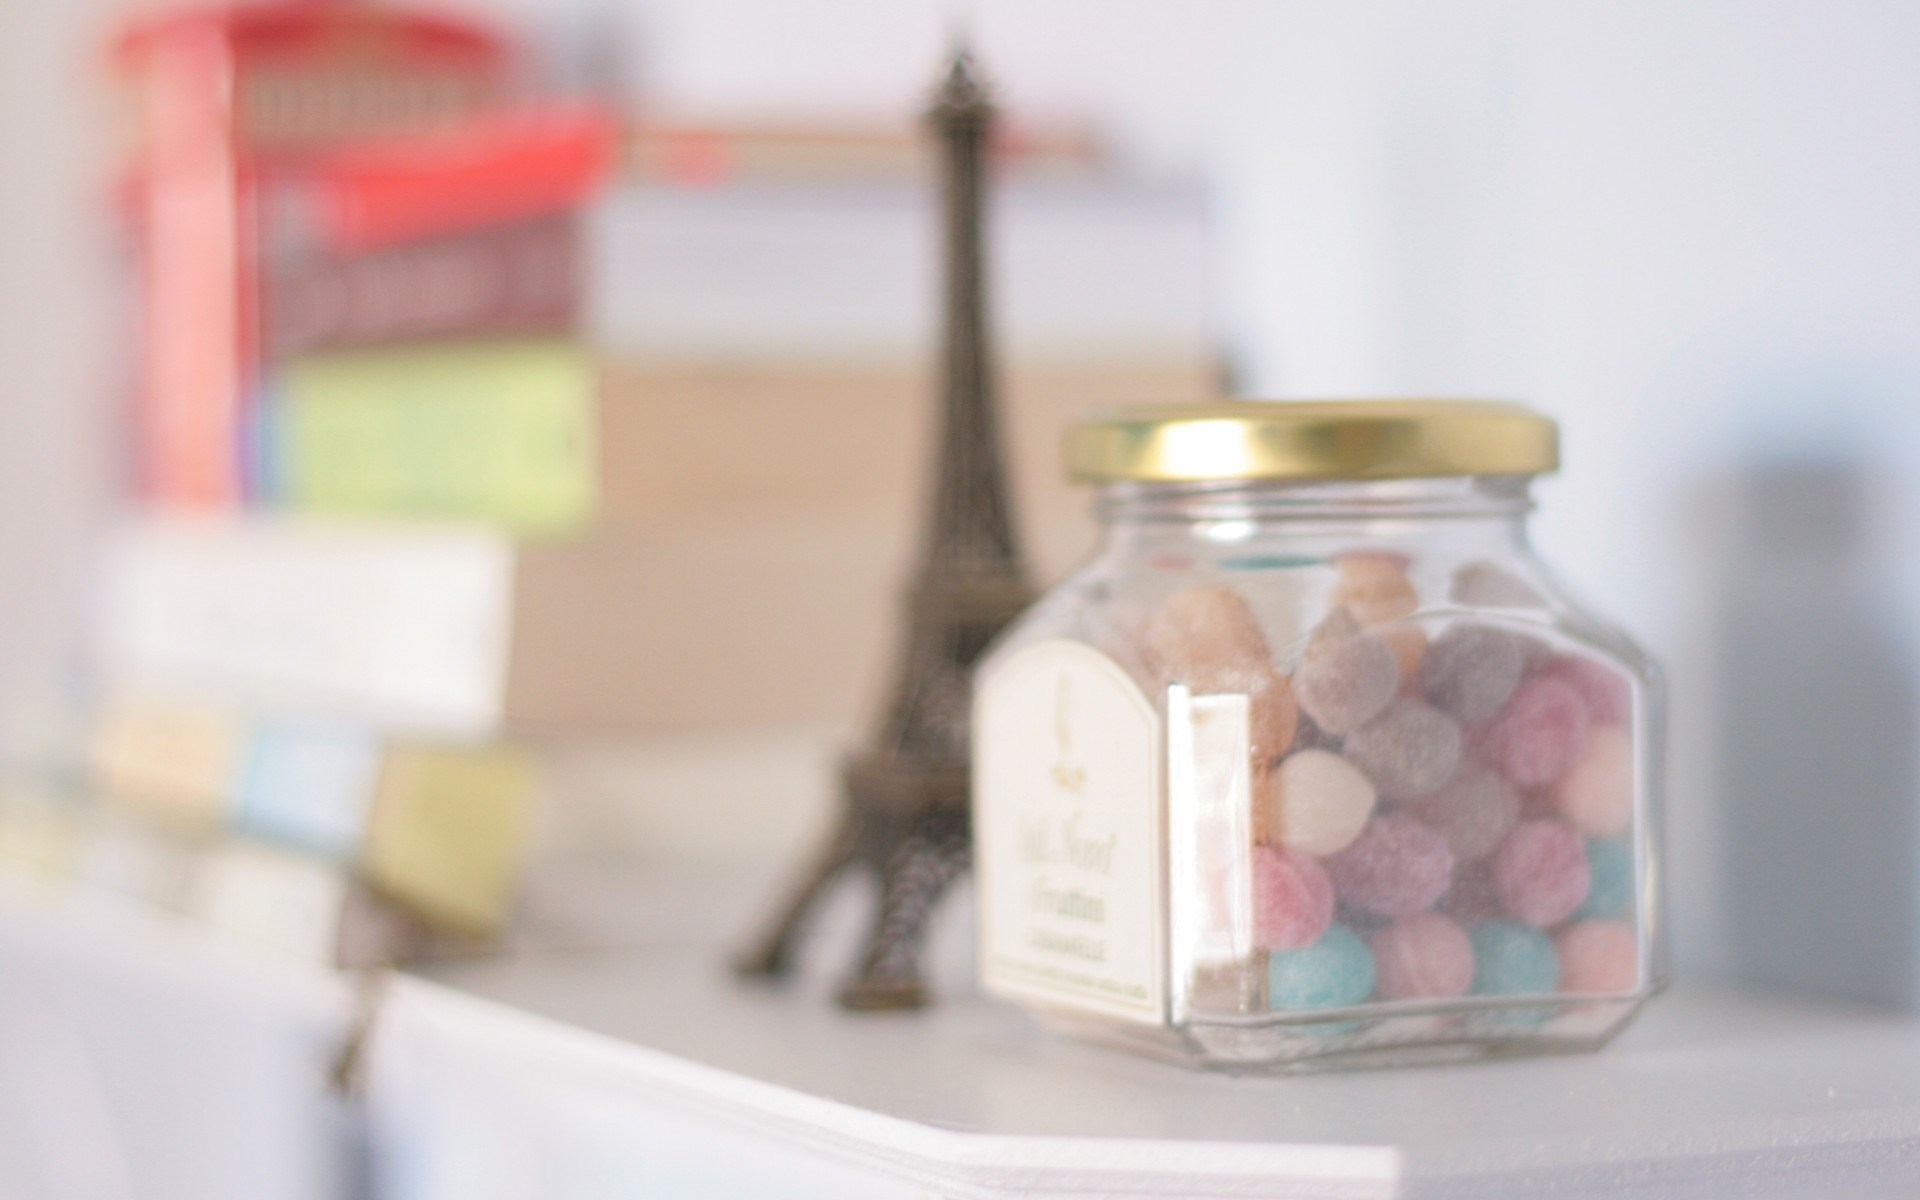 The Eiffel Tower Sweets